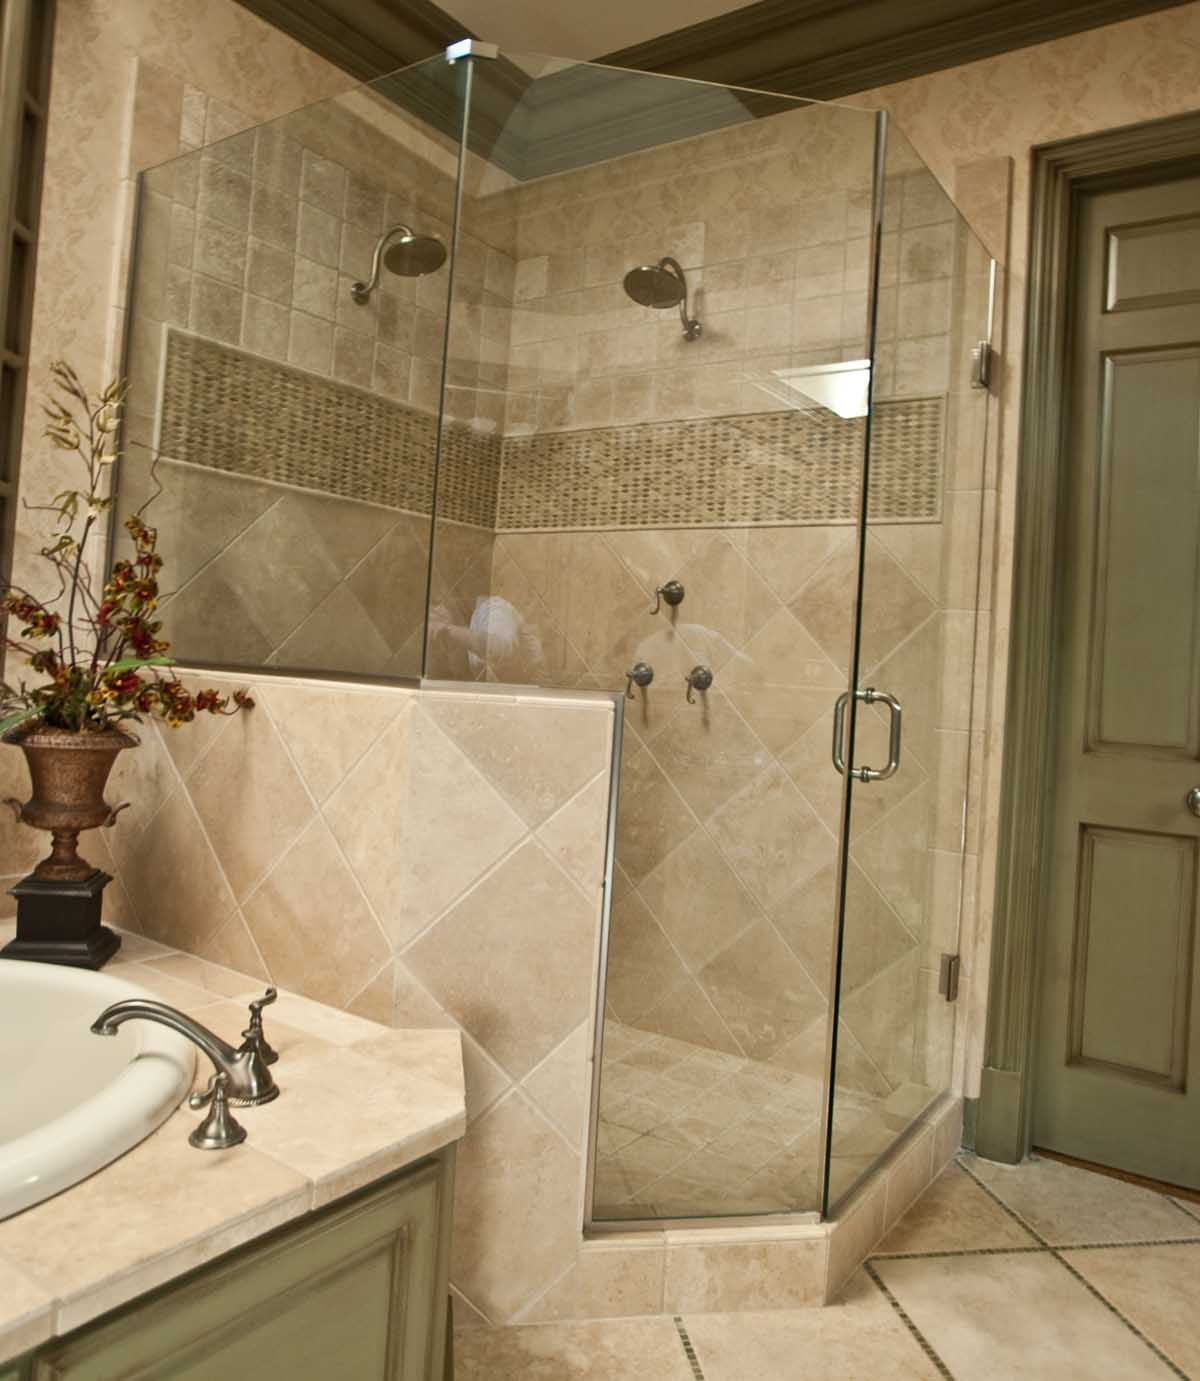 rustic-bathroom-ideas-beige-ceramic-stone-lowes-bathroom-tile-double-handle-stainless-steel-bathroom-faucet-dark-green-painted-wooden-bathroom-door-floral-canvas-painting-walls-decor